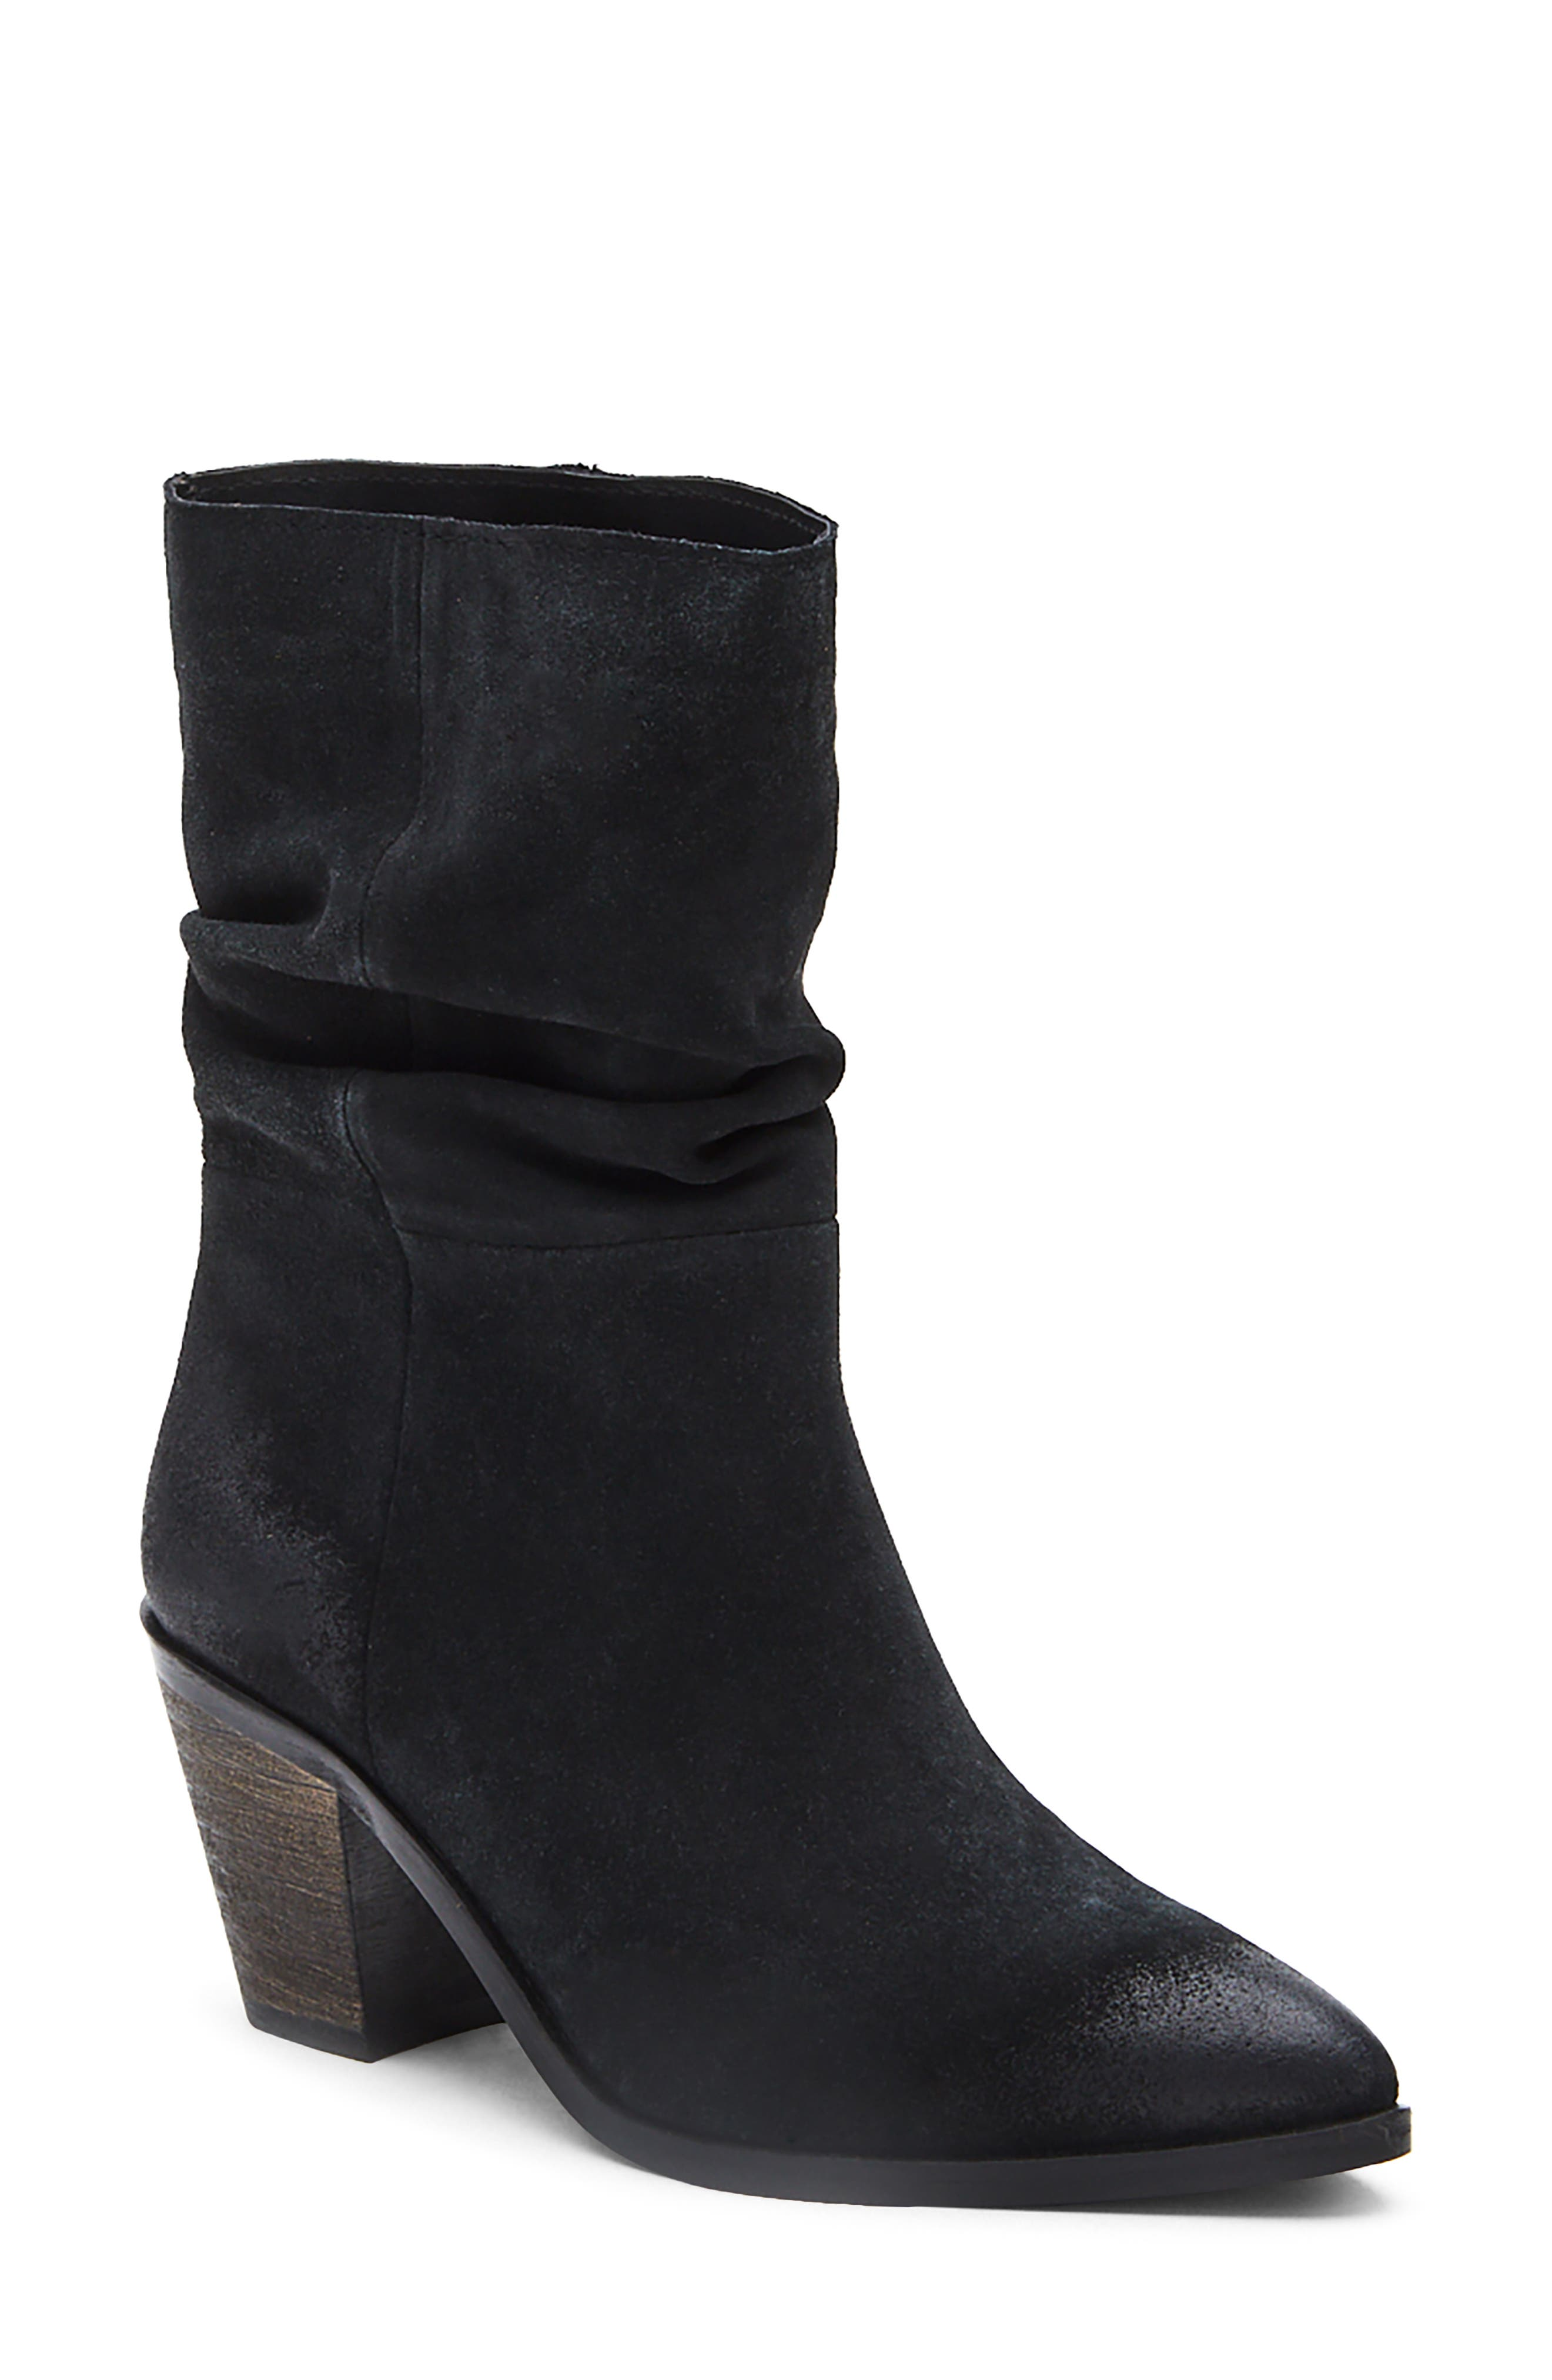 Dagget Pointed Toe Boot